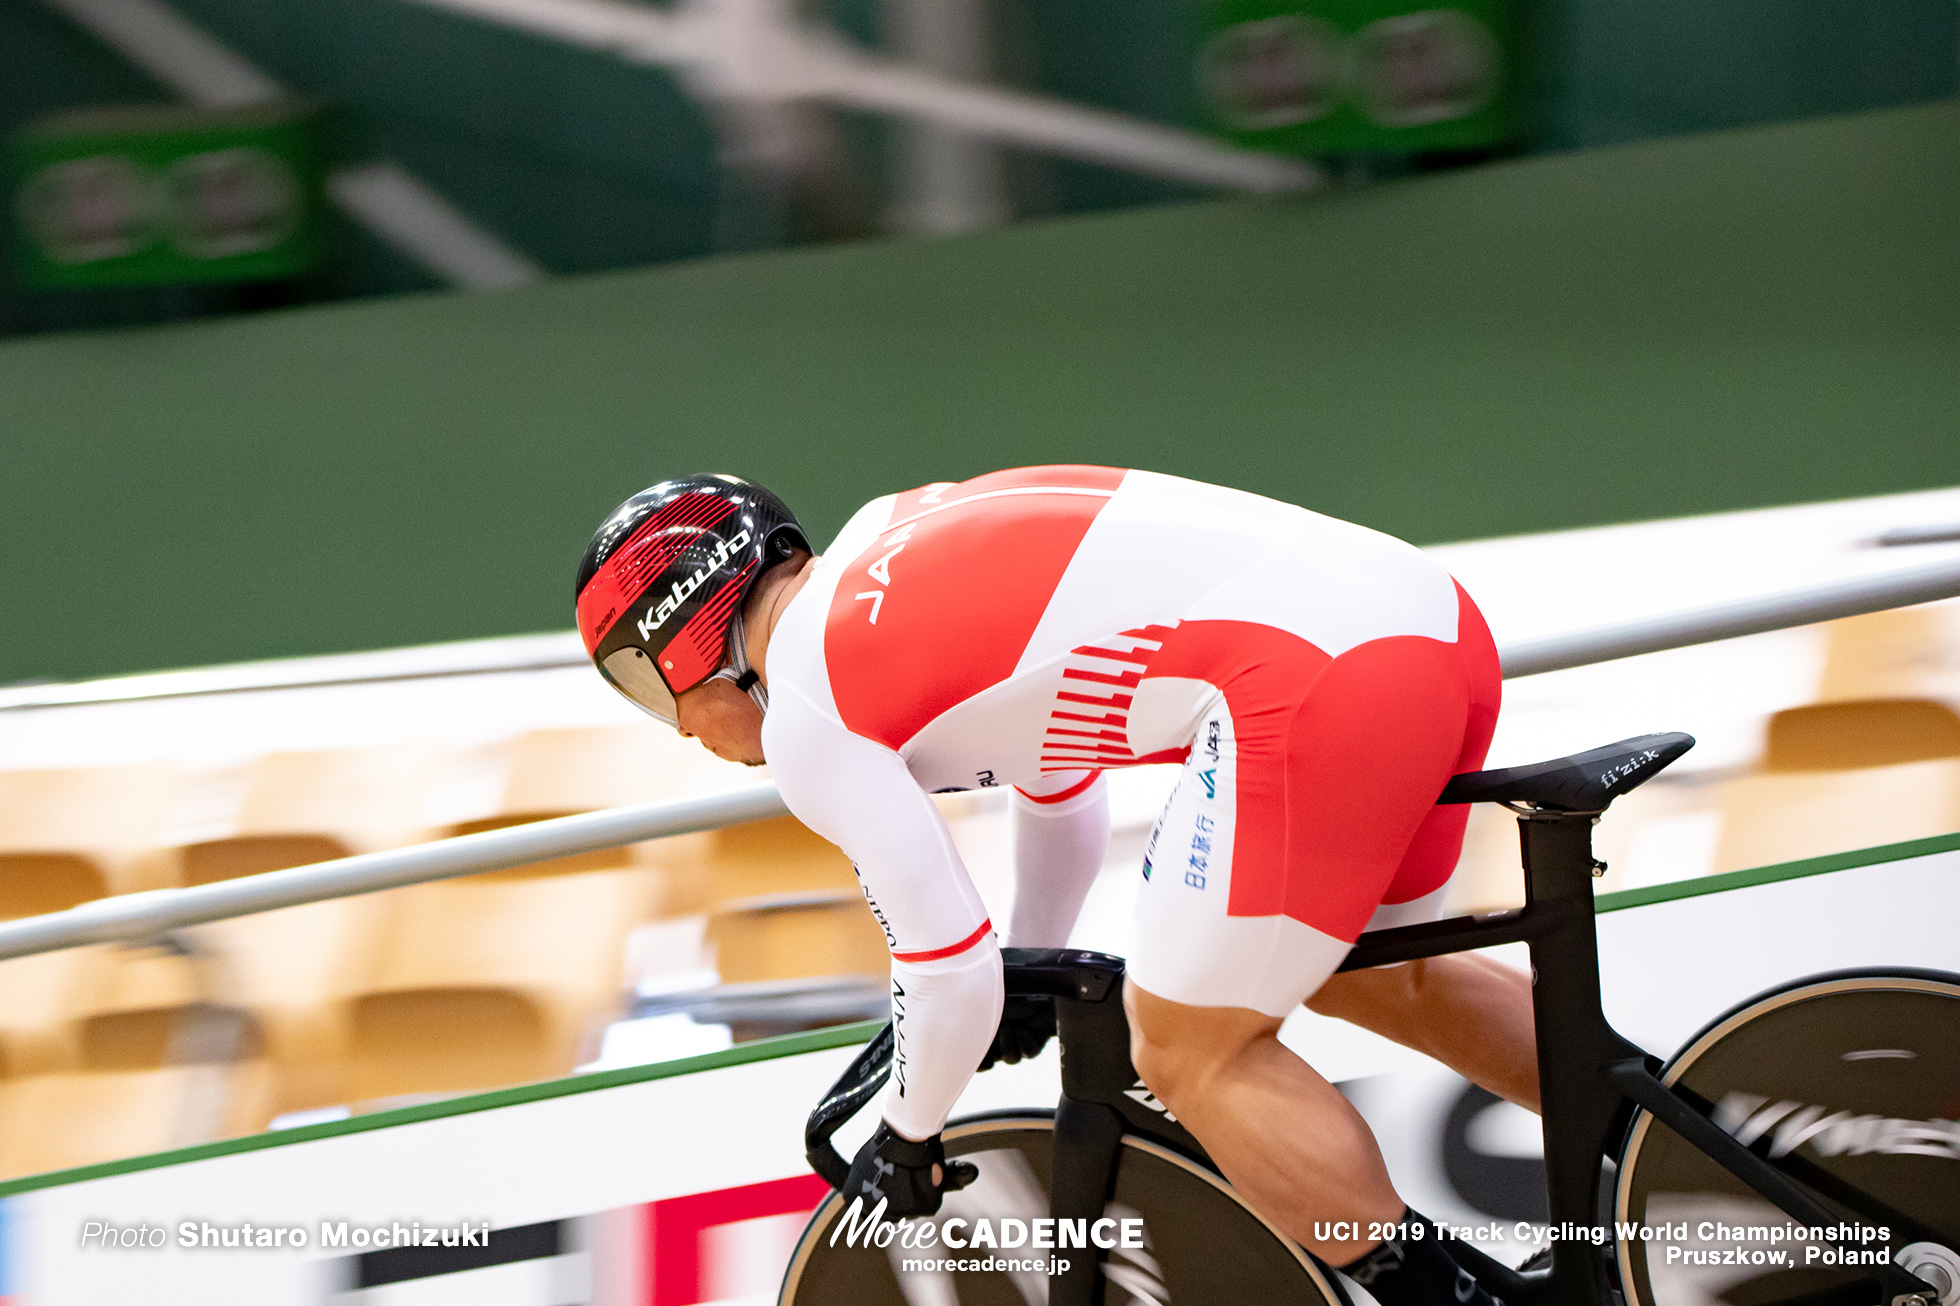 2019 Track Cycling World Championships Pruszków, Poland